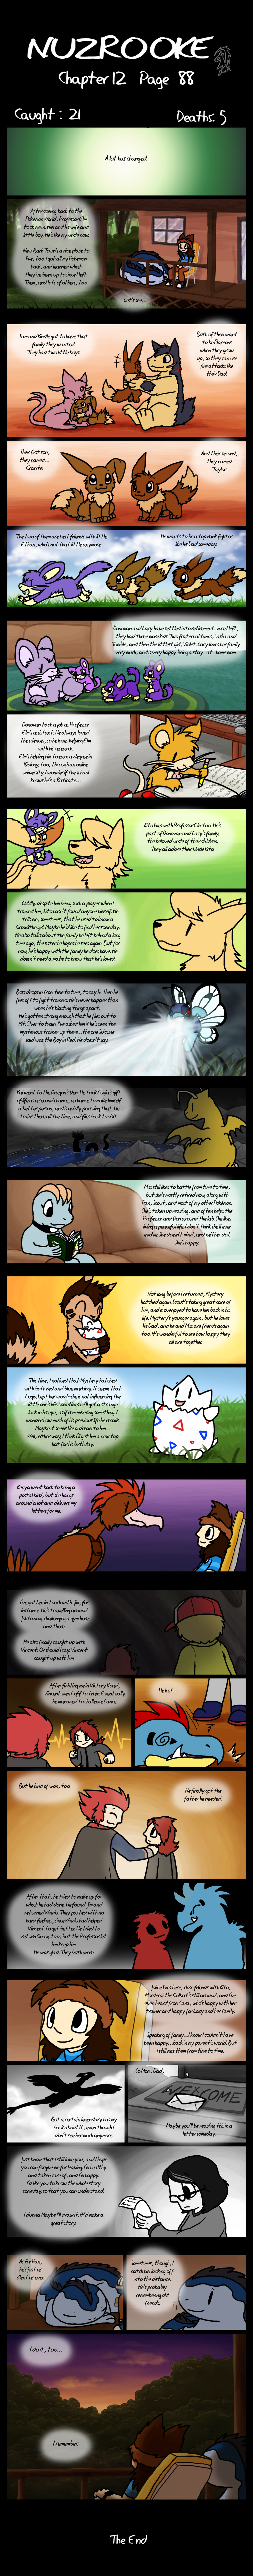 NuzRooke Silver - Chapter 12 - Page 88 by DragonwolfRooke